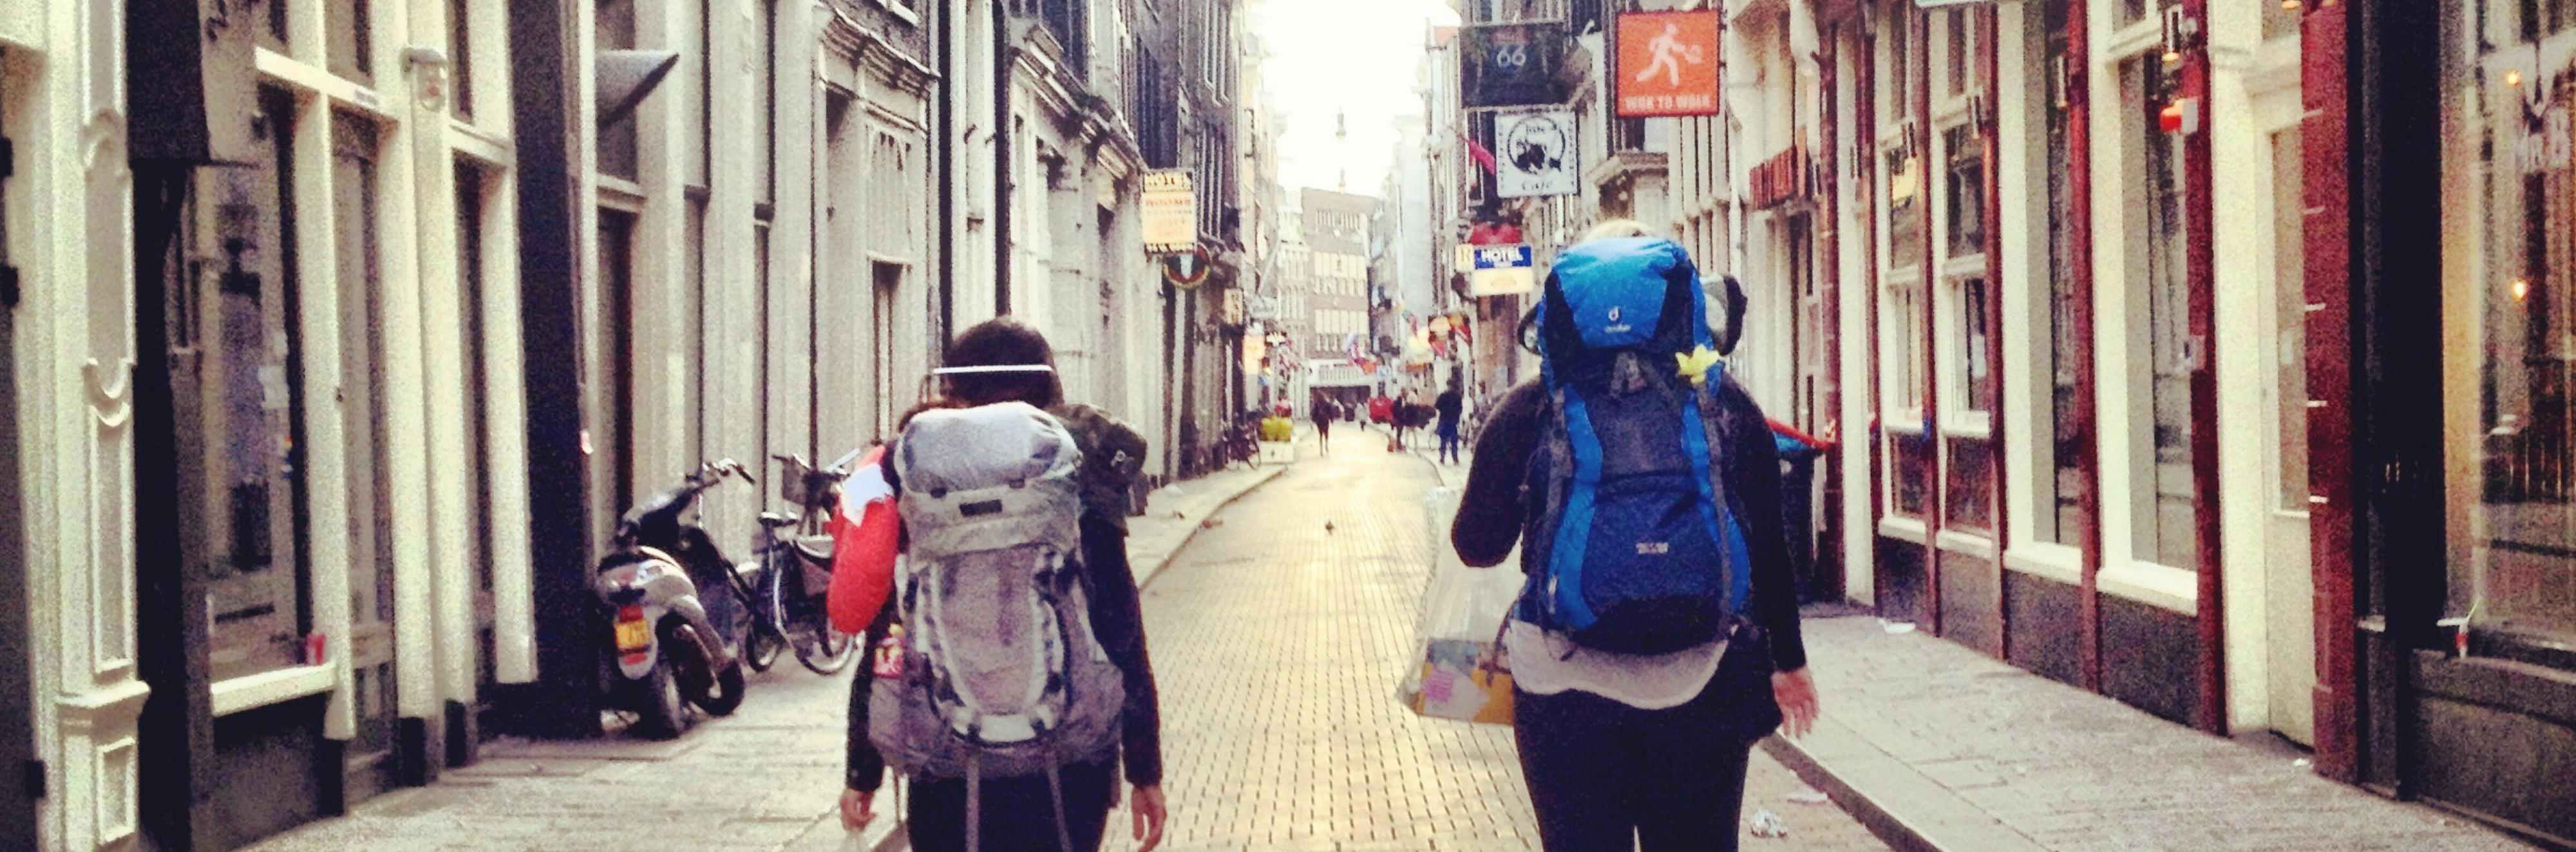 Best Backpack for Traveling Europe!